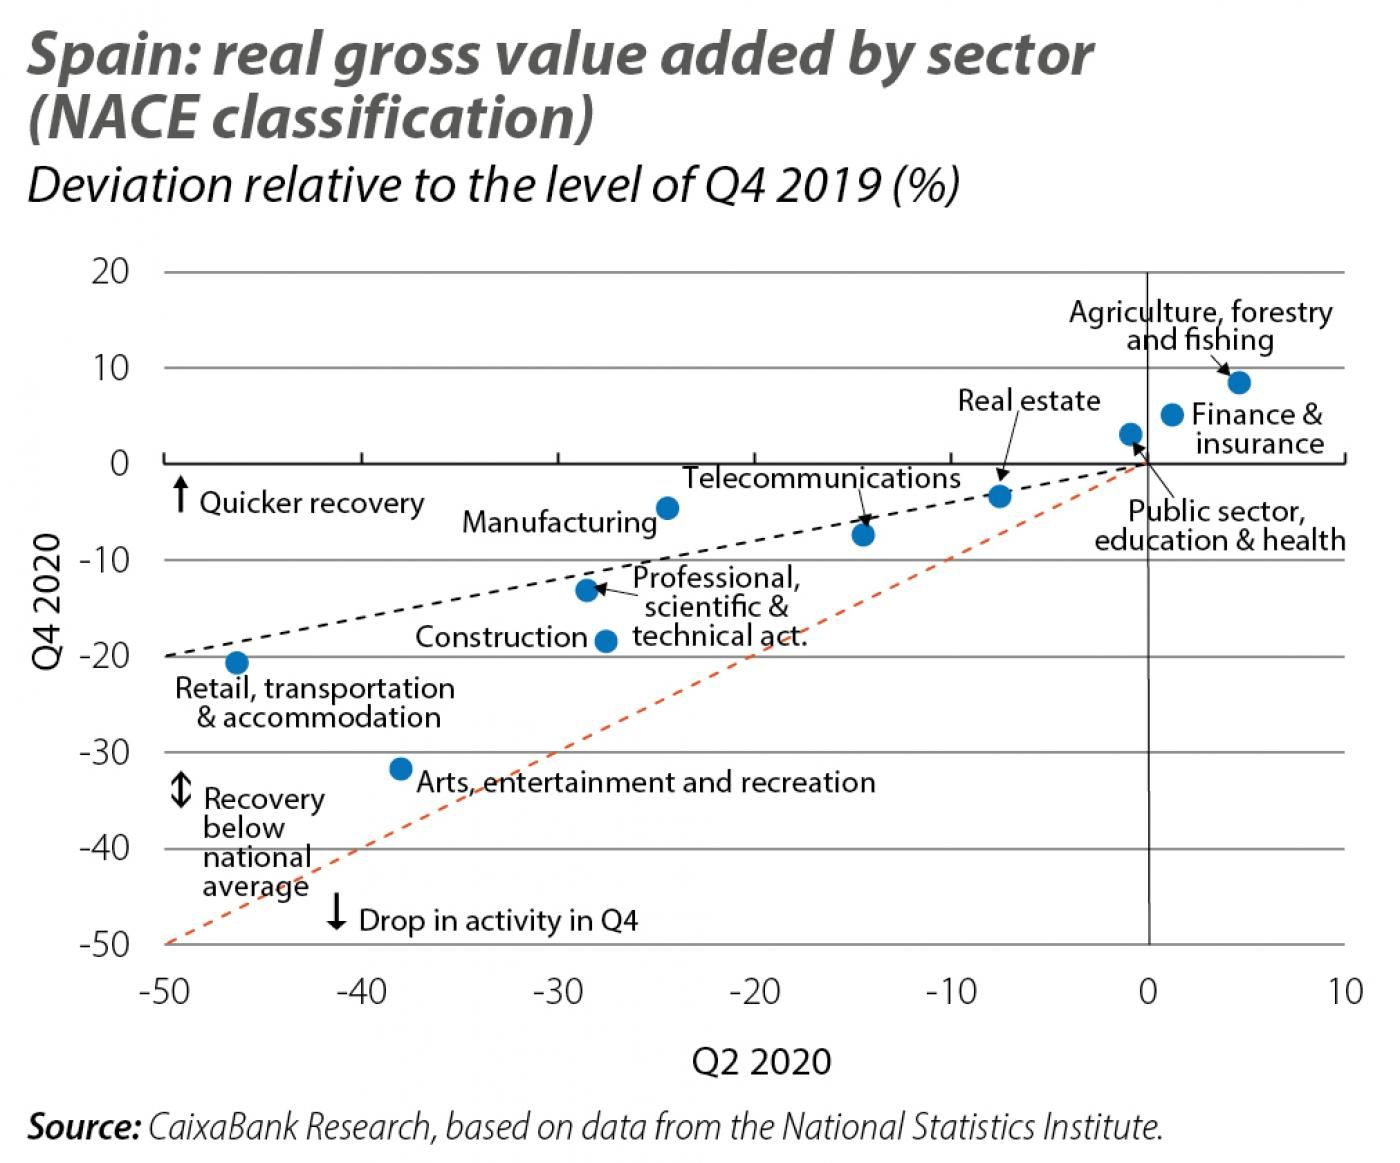 Spain: real gross value added by sector (NACE classification)